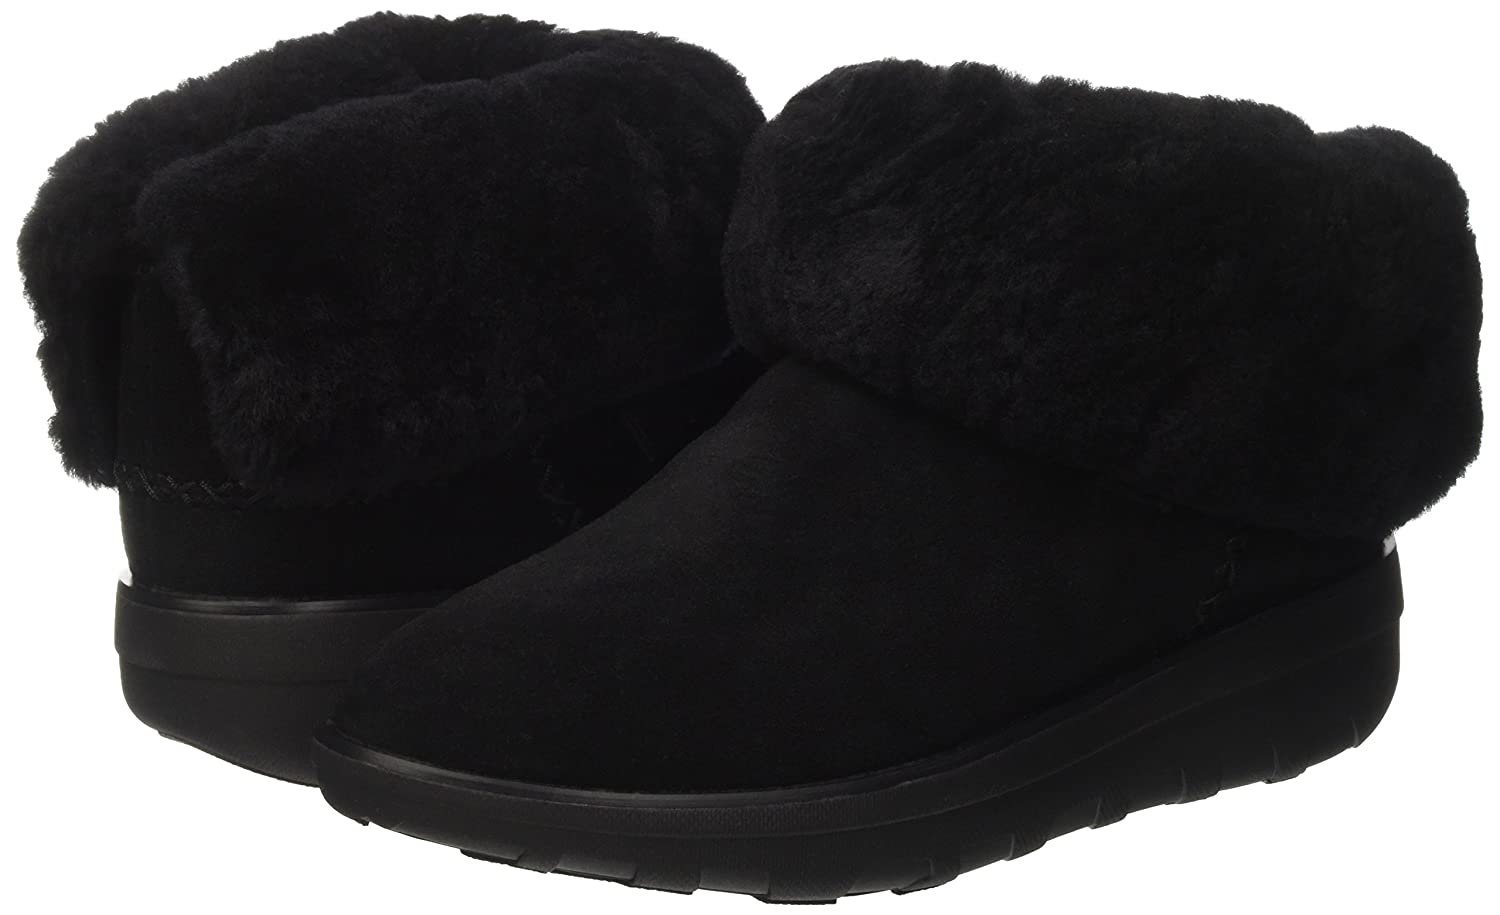 FitFlop Women's Mukluk Shorty 2 Mid Calf Boot B06VWDPK5P 6.5 B(M) US|All Black